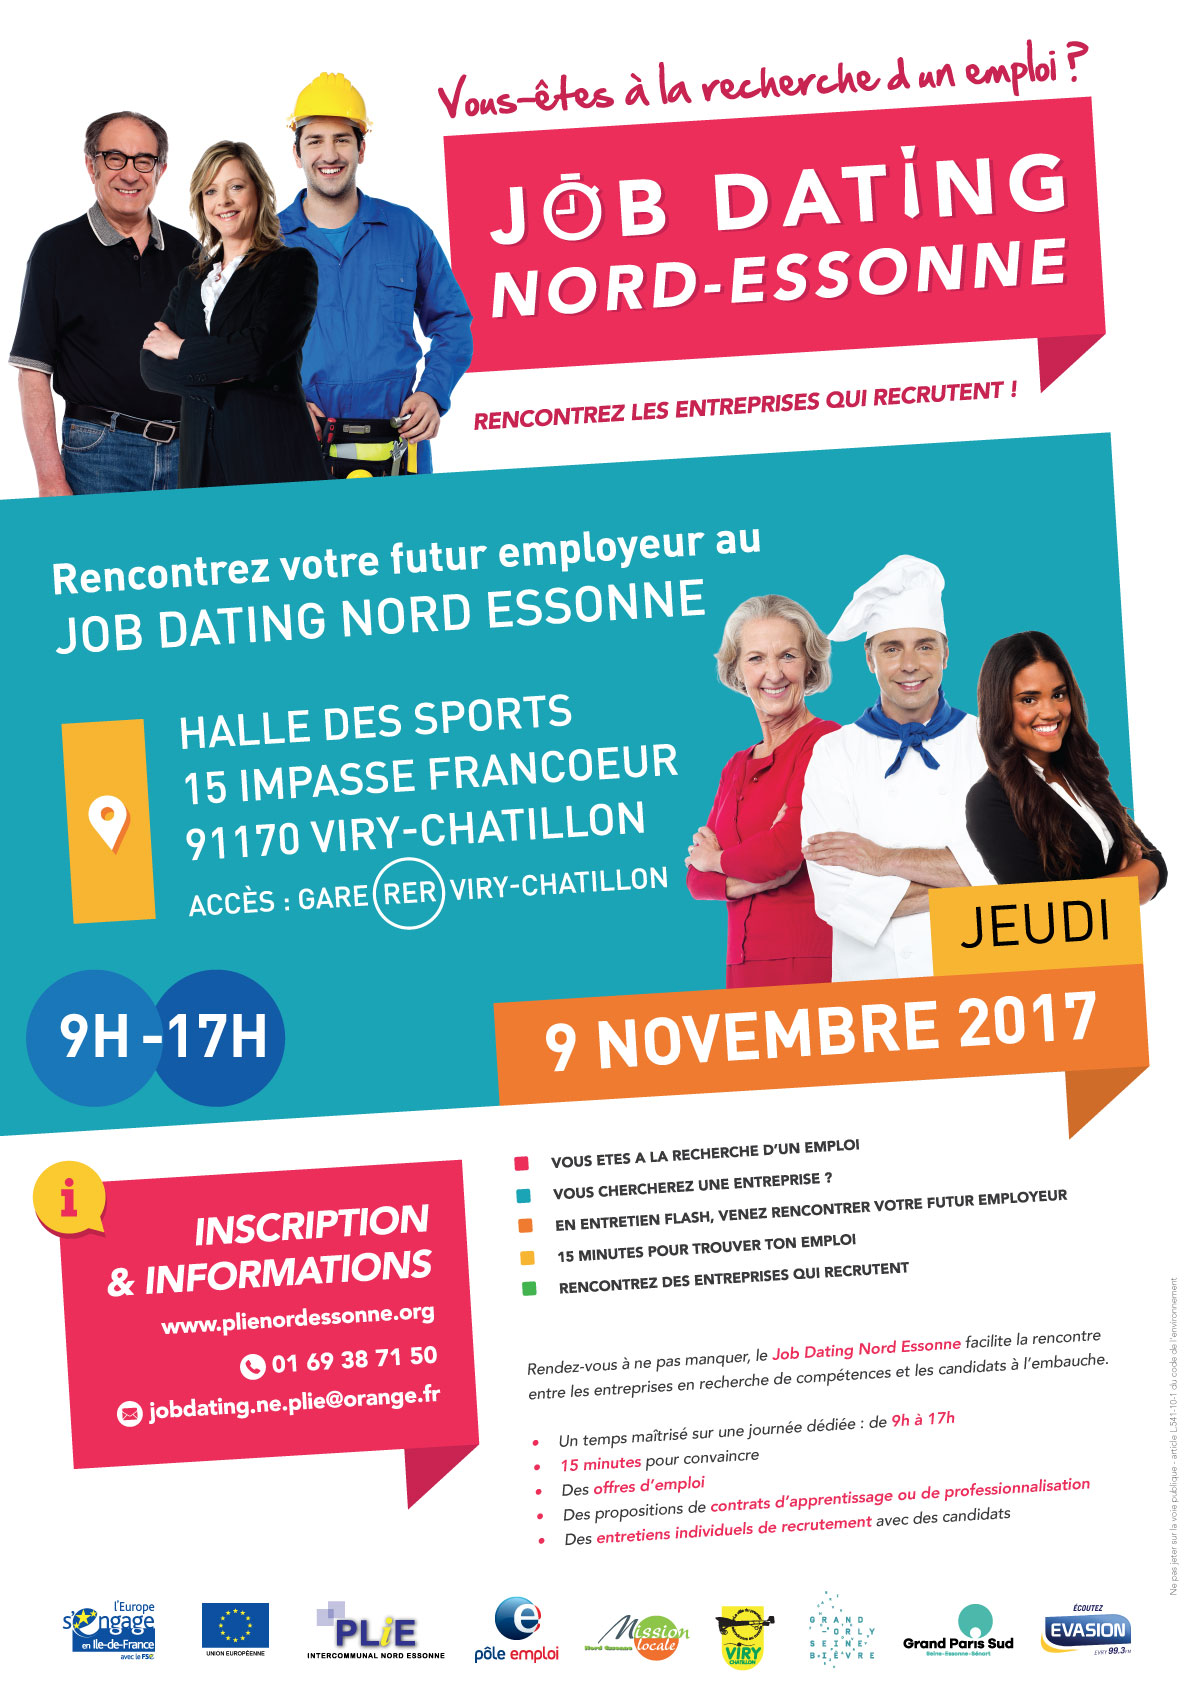 Job dating Nord Essonne Viry-Chatillon 9 novembre 2017